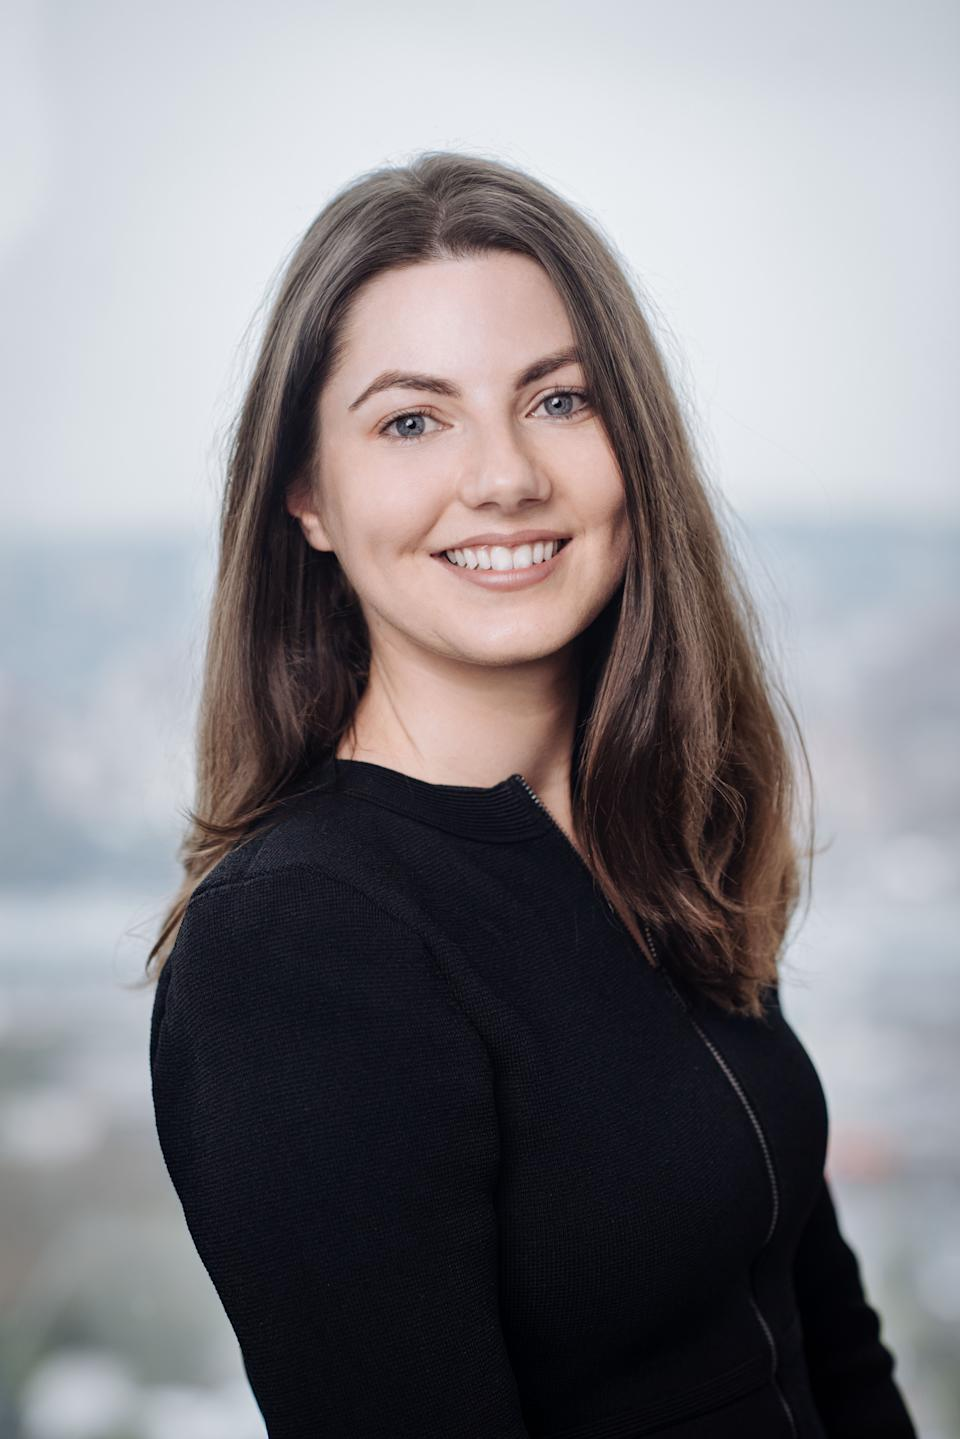 Emilie O'Neill, Co-Head of ESG & Equities Analyst at Perennial Better Future. (Source: Supplied)